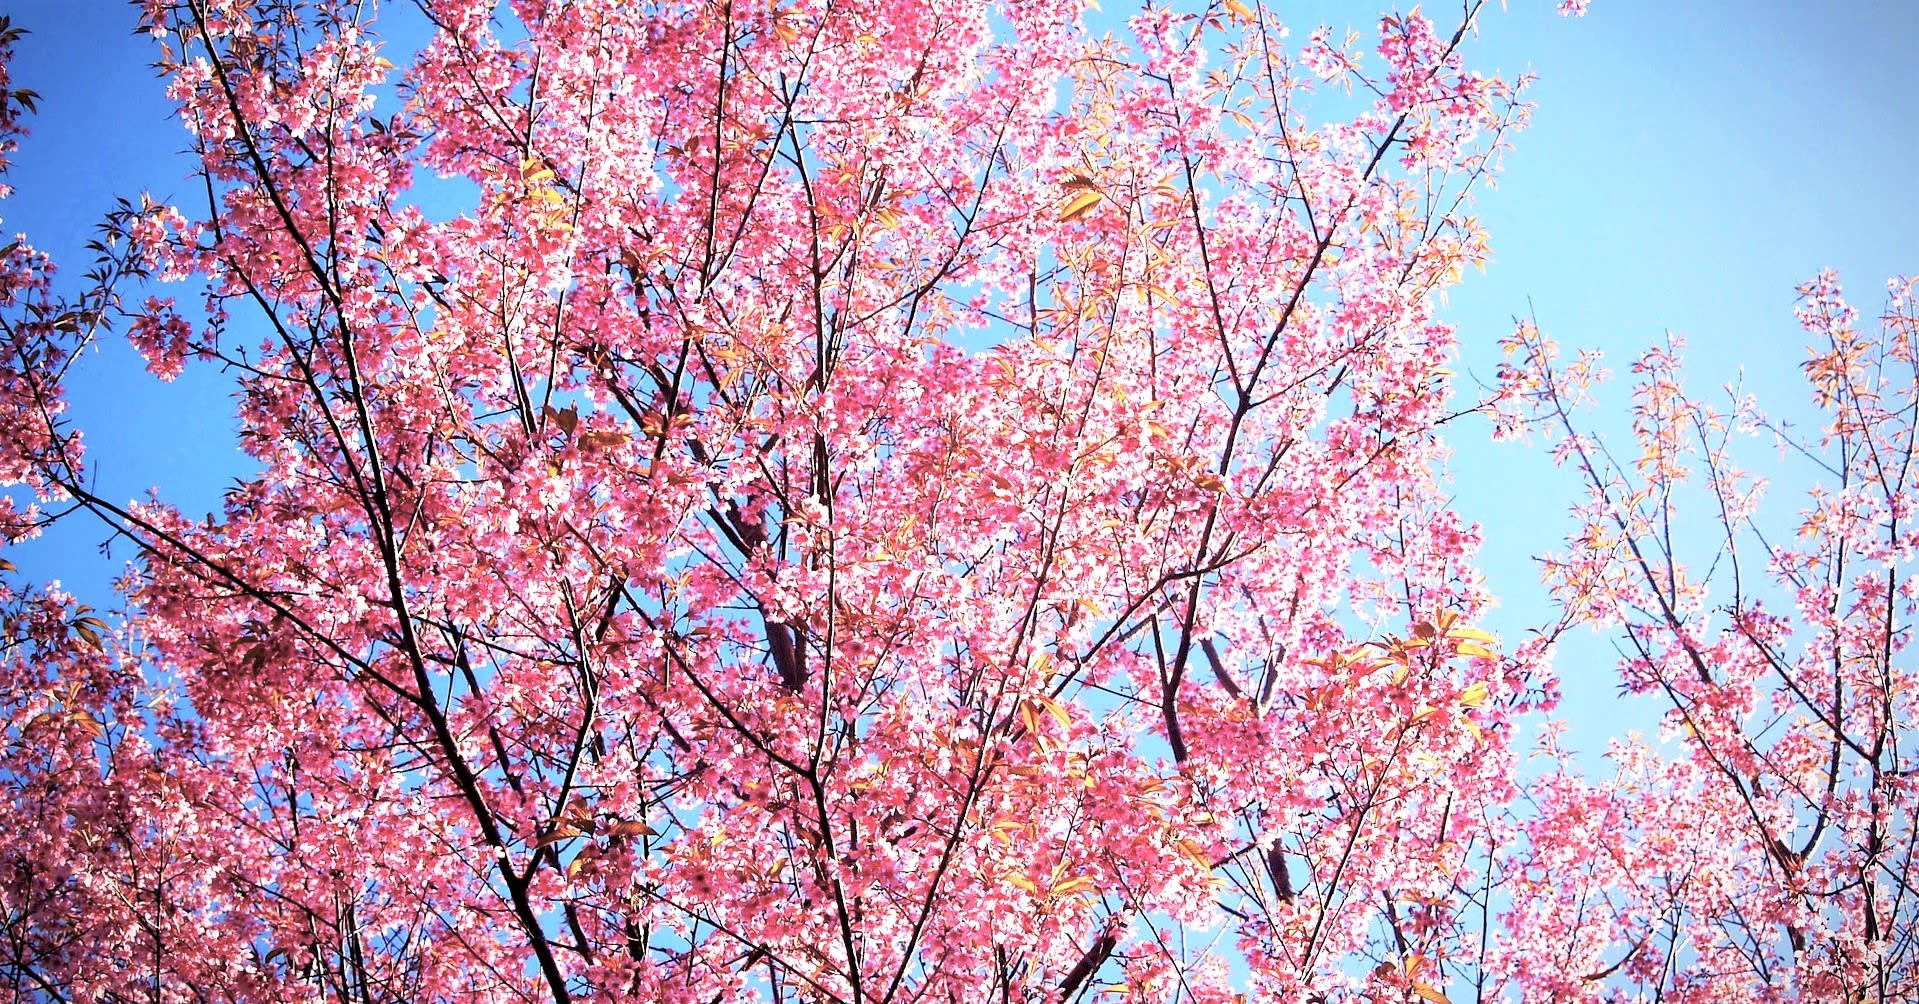 Doi Chang Cherry Blossoms